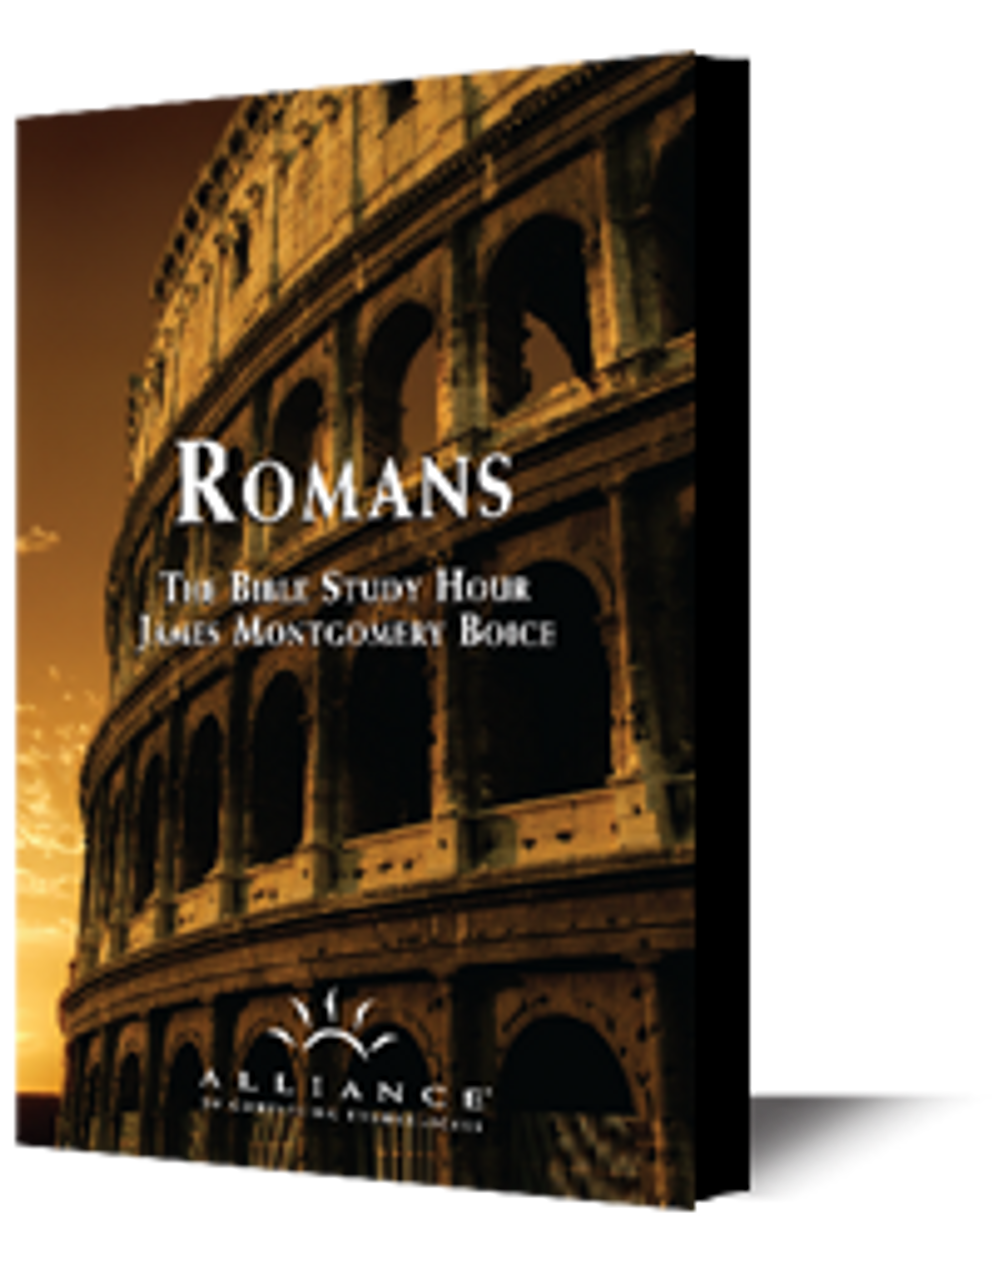 Romans, Volume 25: The Christian and the Other People (CD Set)